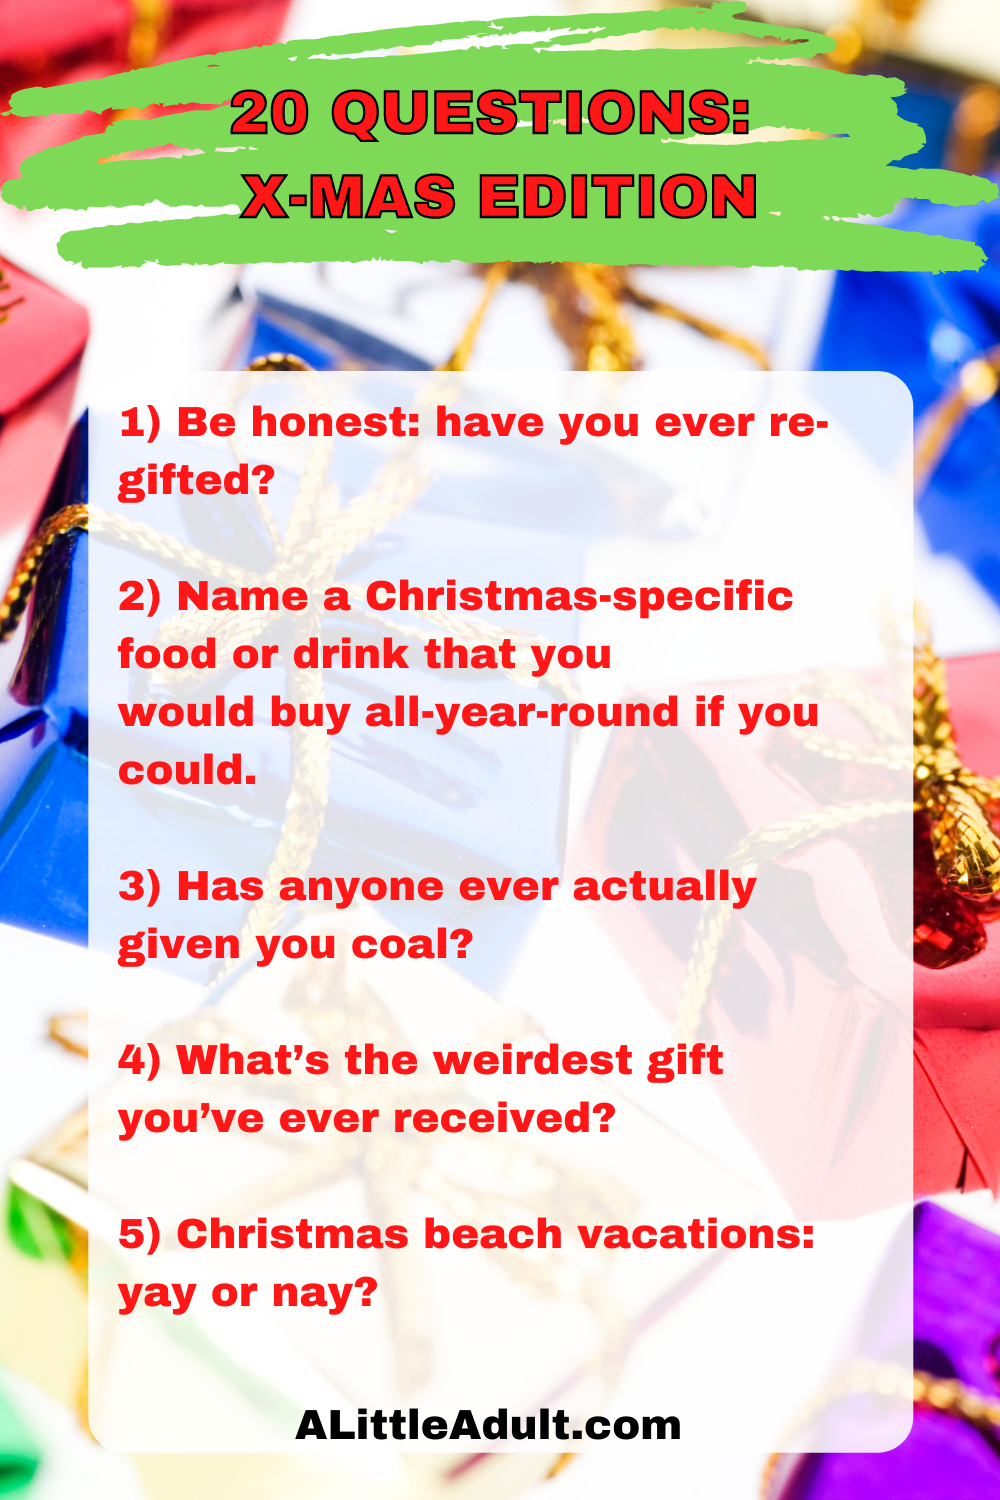 20 QUESTIONS: X-MAS EDITION